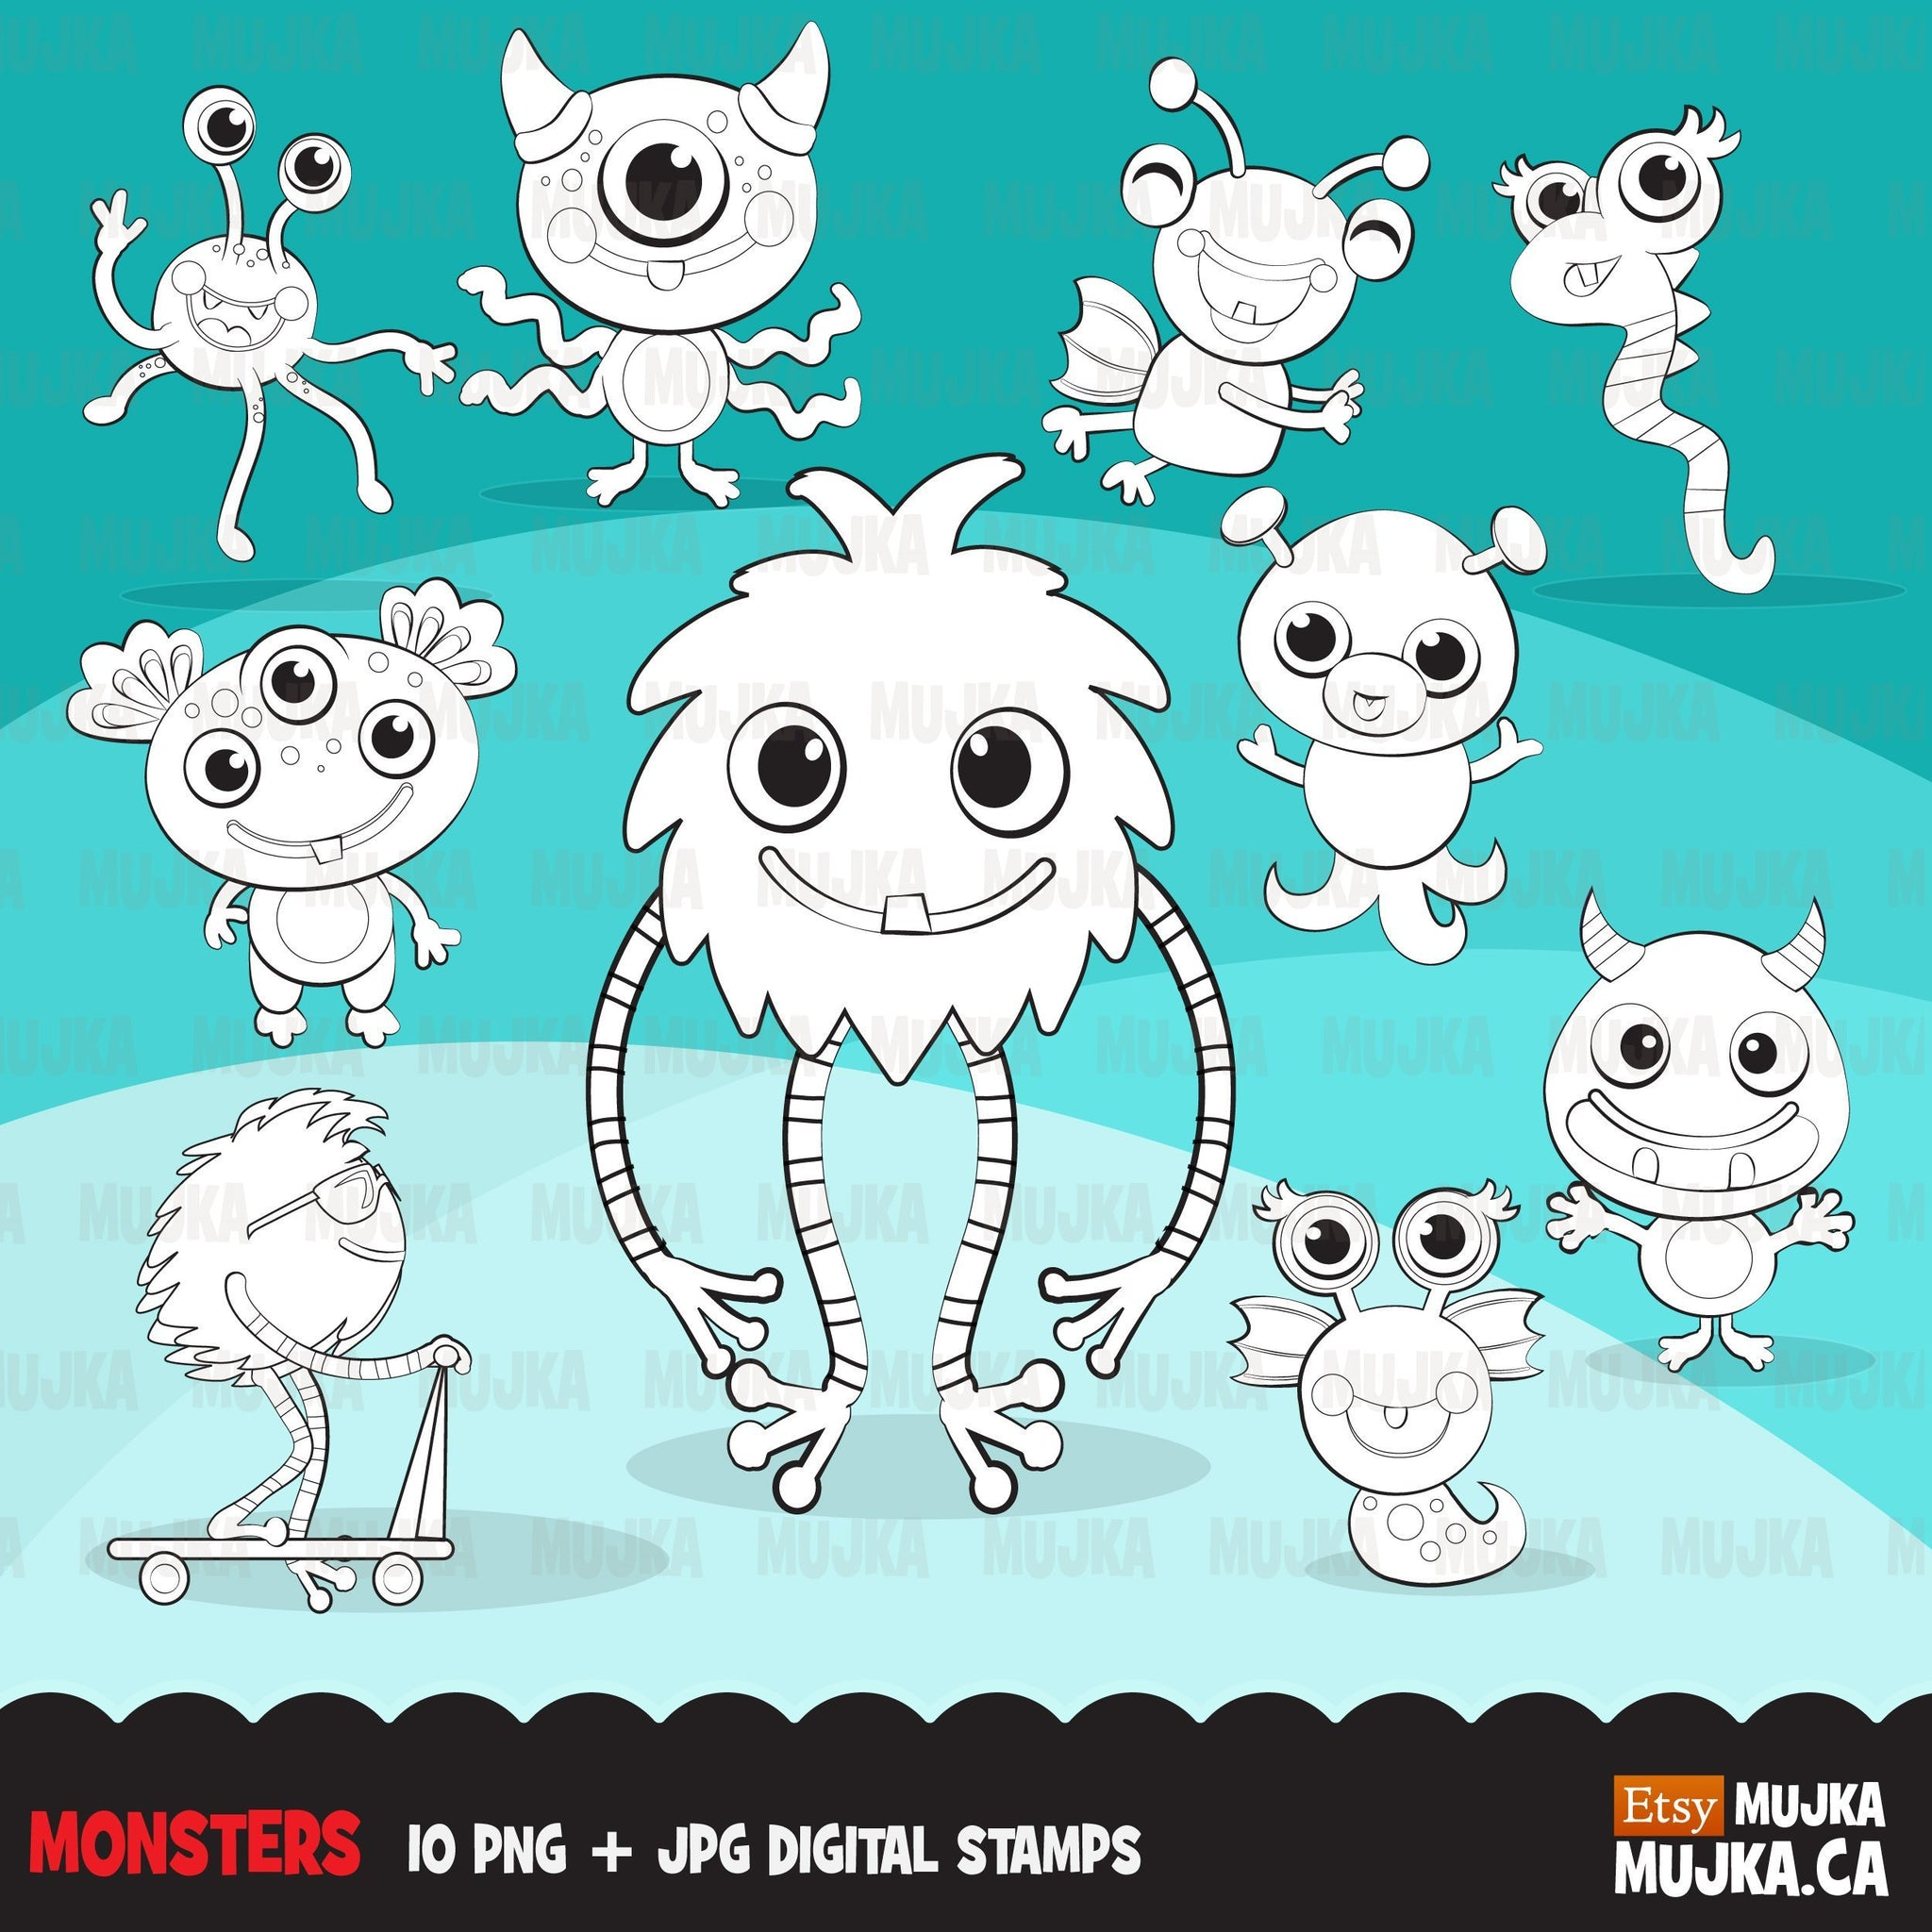 Monsters Digital Stamps